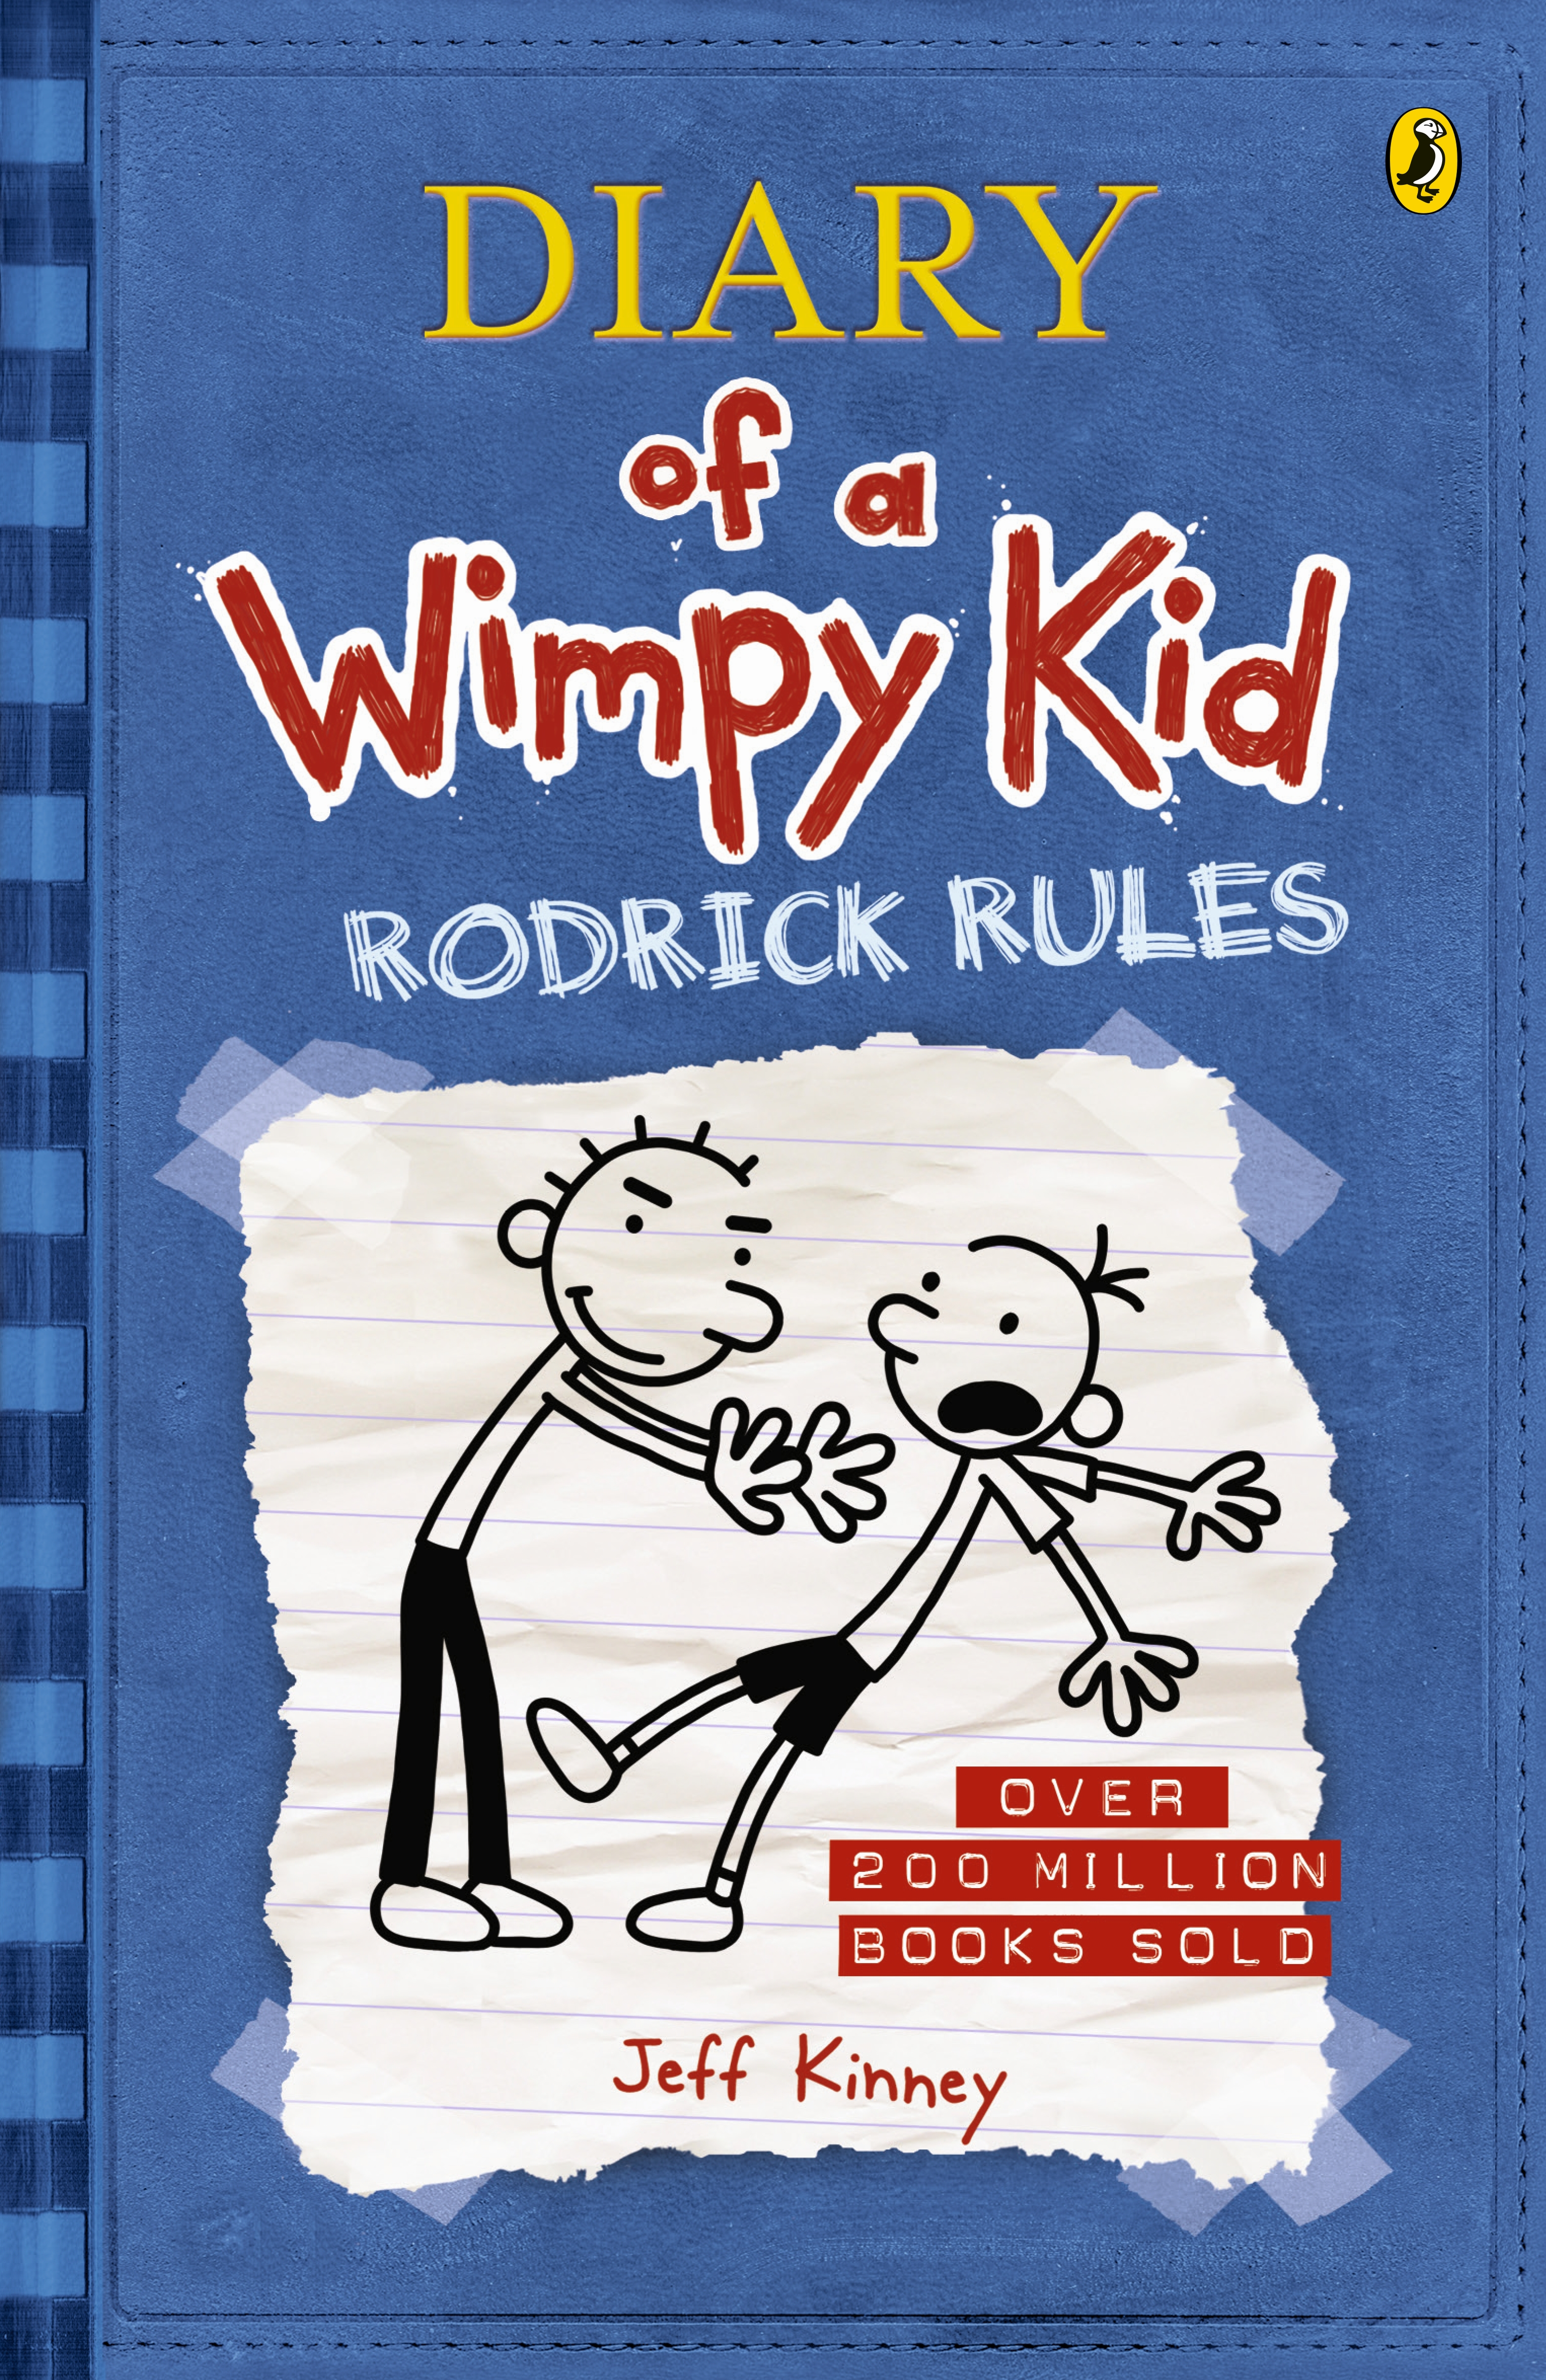 Book Cover:  Rodrick Rules: Diary of a Wimpy Kid